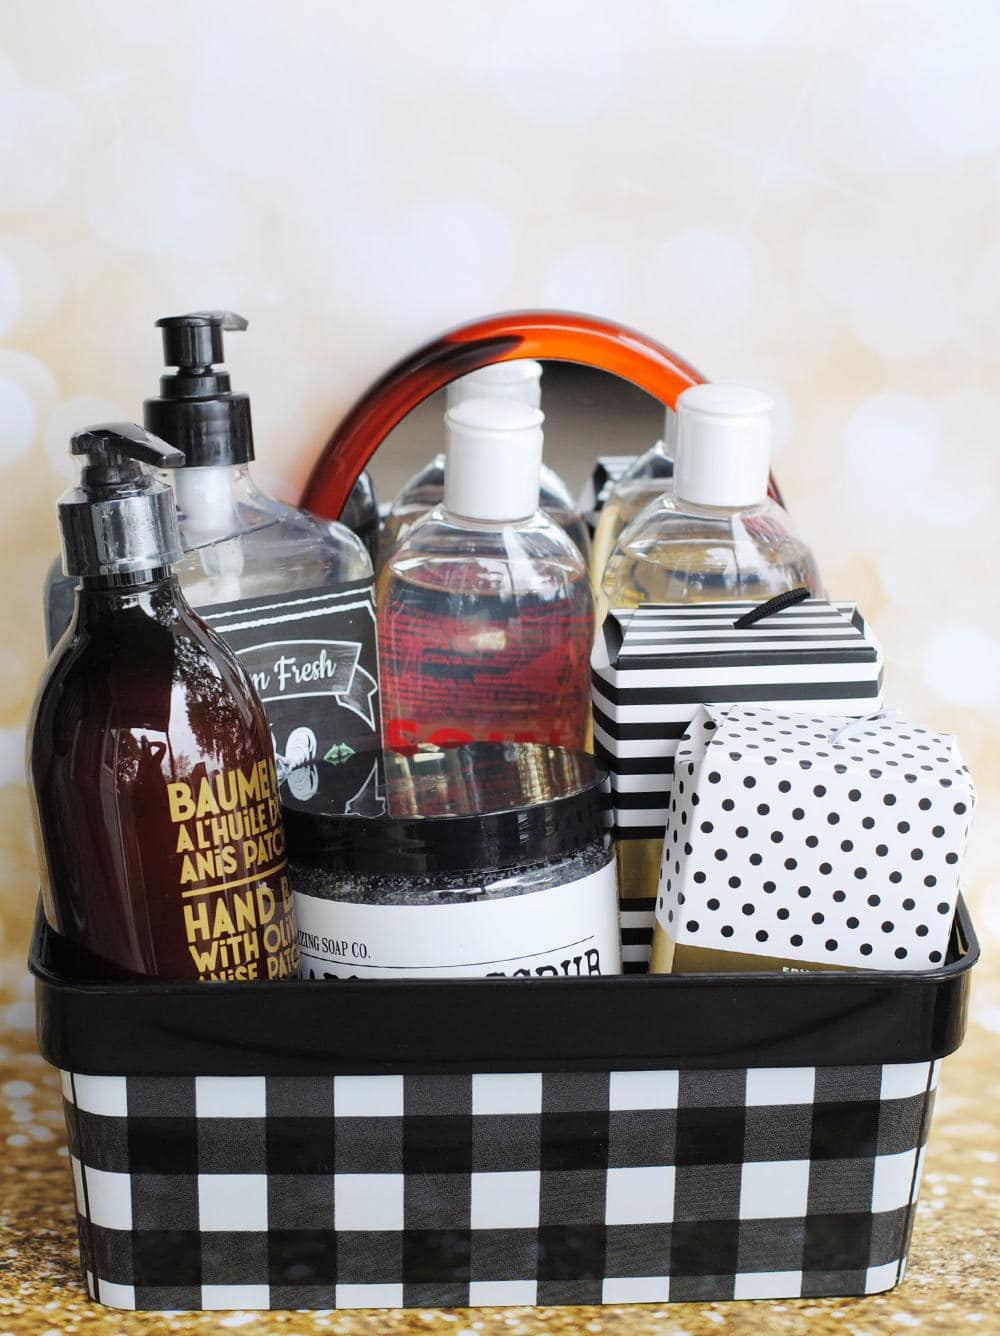 Cute Gift Baskets for Teenage Girls featuring Tuesday Morning #shopping #holidays #Christmas #Hanukkah #presents #gifts #forher #bathandbody #beauty #hair #makeup #teenager #teenagegirl